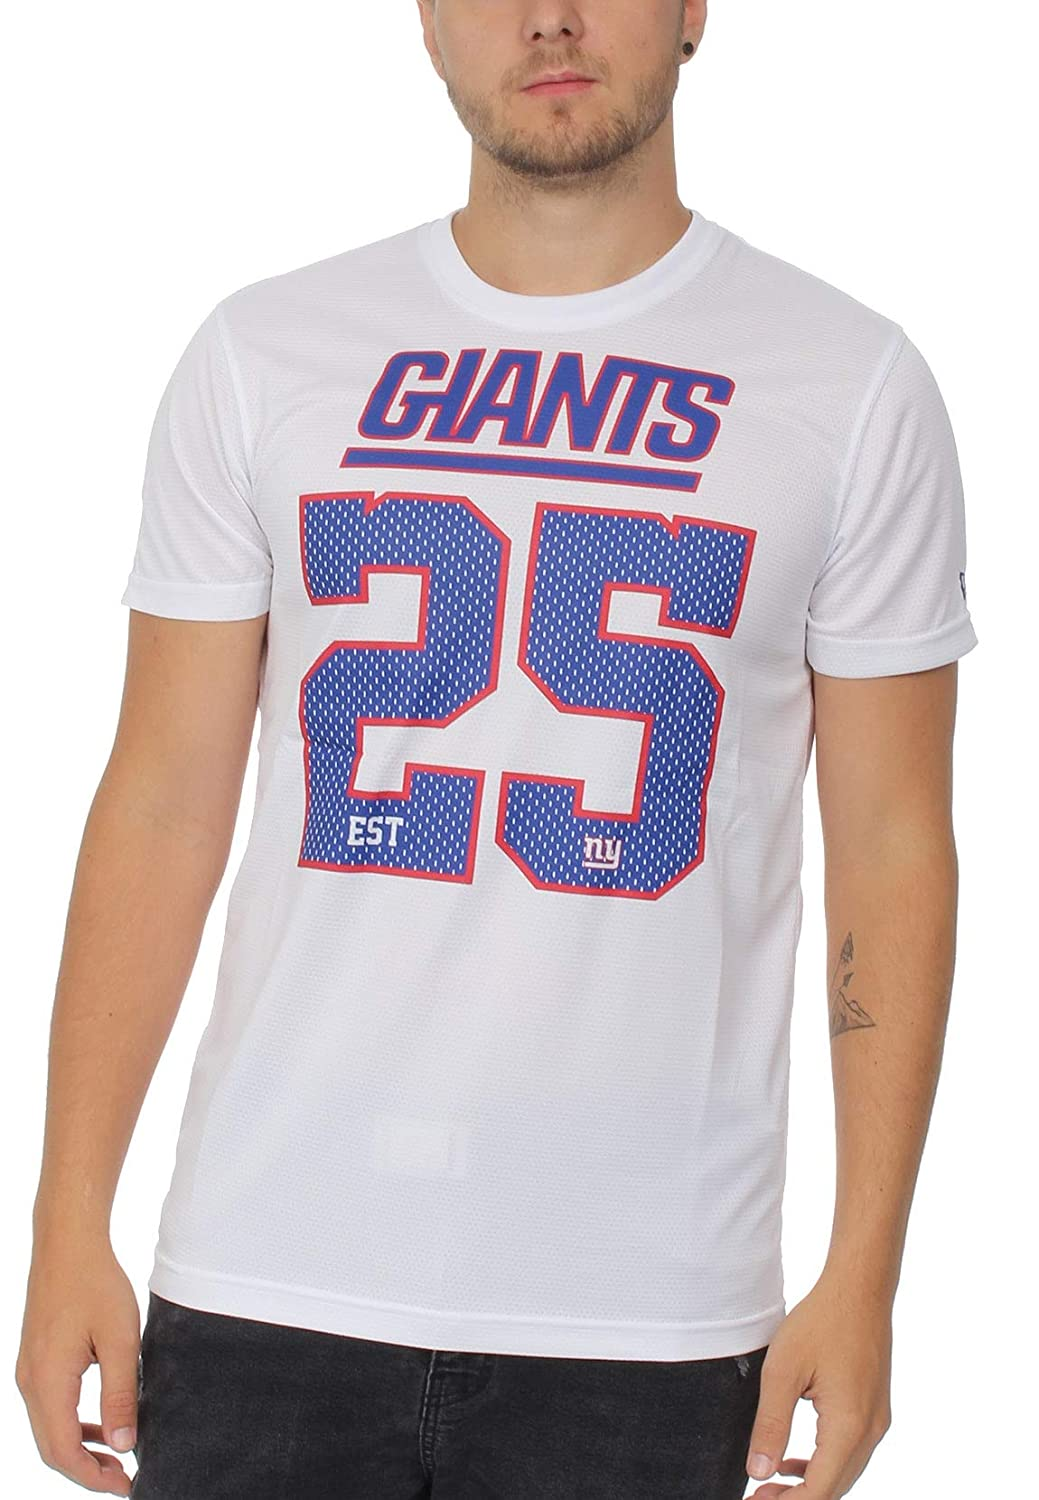 Size Medium - XXL New York Giants New Era Mesh Loose Fit Jersey White